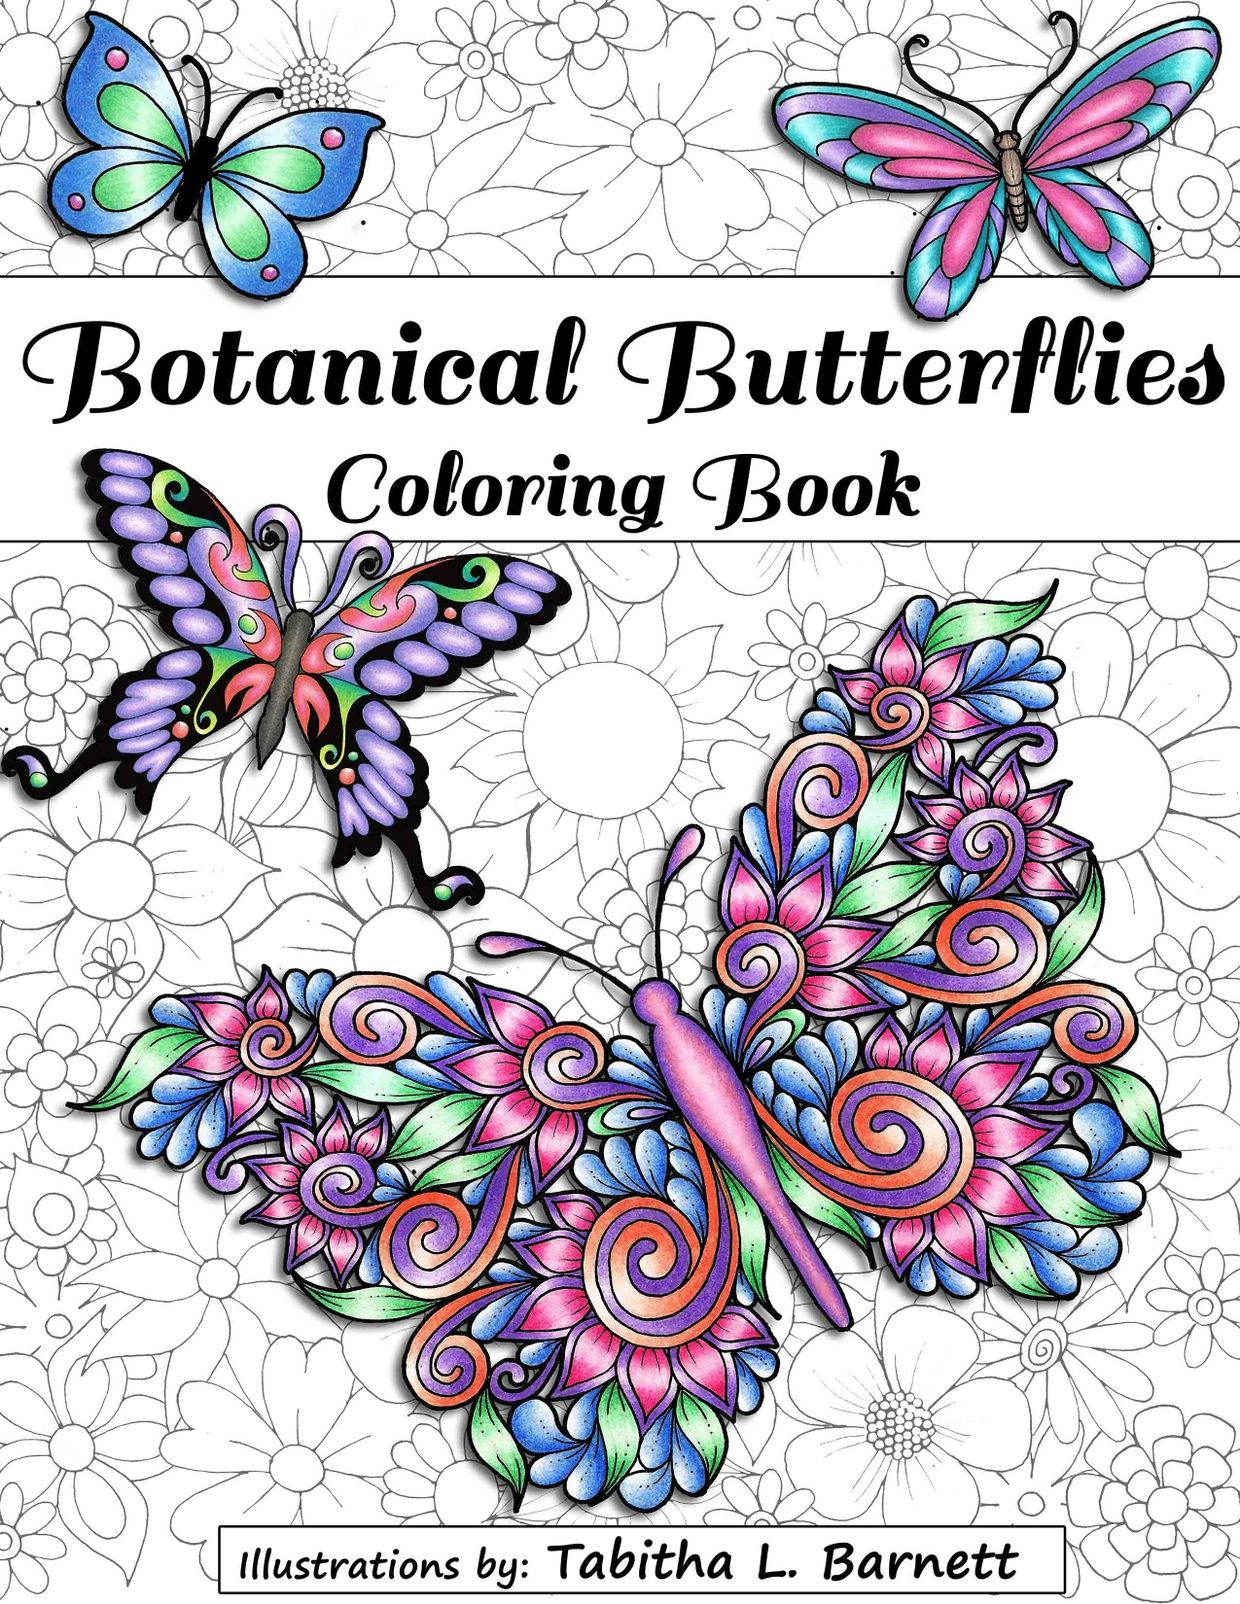 Botanical Butterflies Coloring Book Pdf 58 Pages To Print And Color Butterfly Coloring Page Flower Coloring Pages Coloring Books